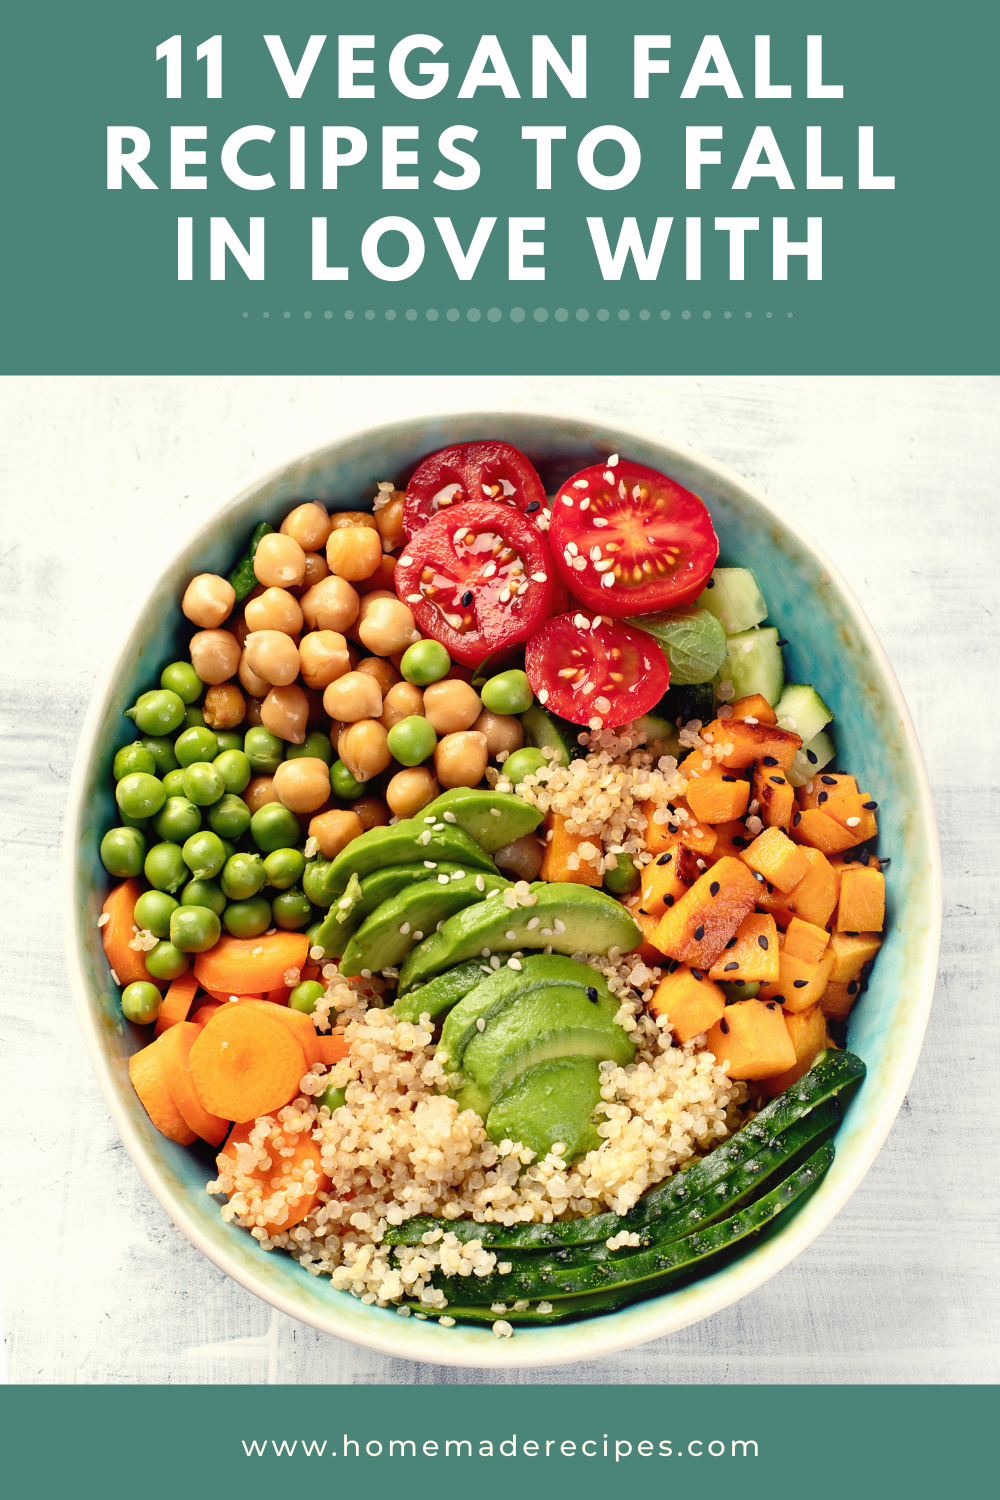 placard   11 Vegan Fall Recipes To Fall In Love With